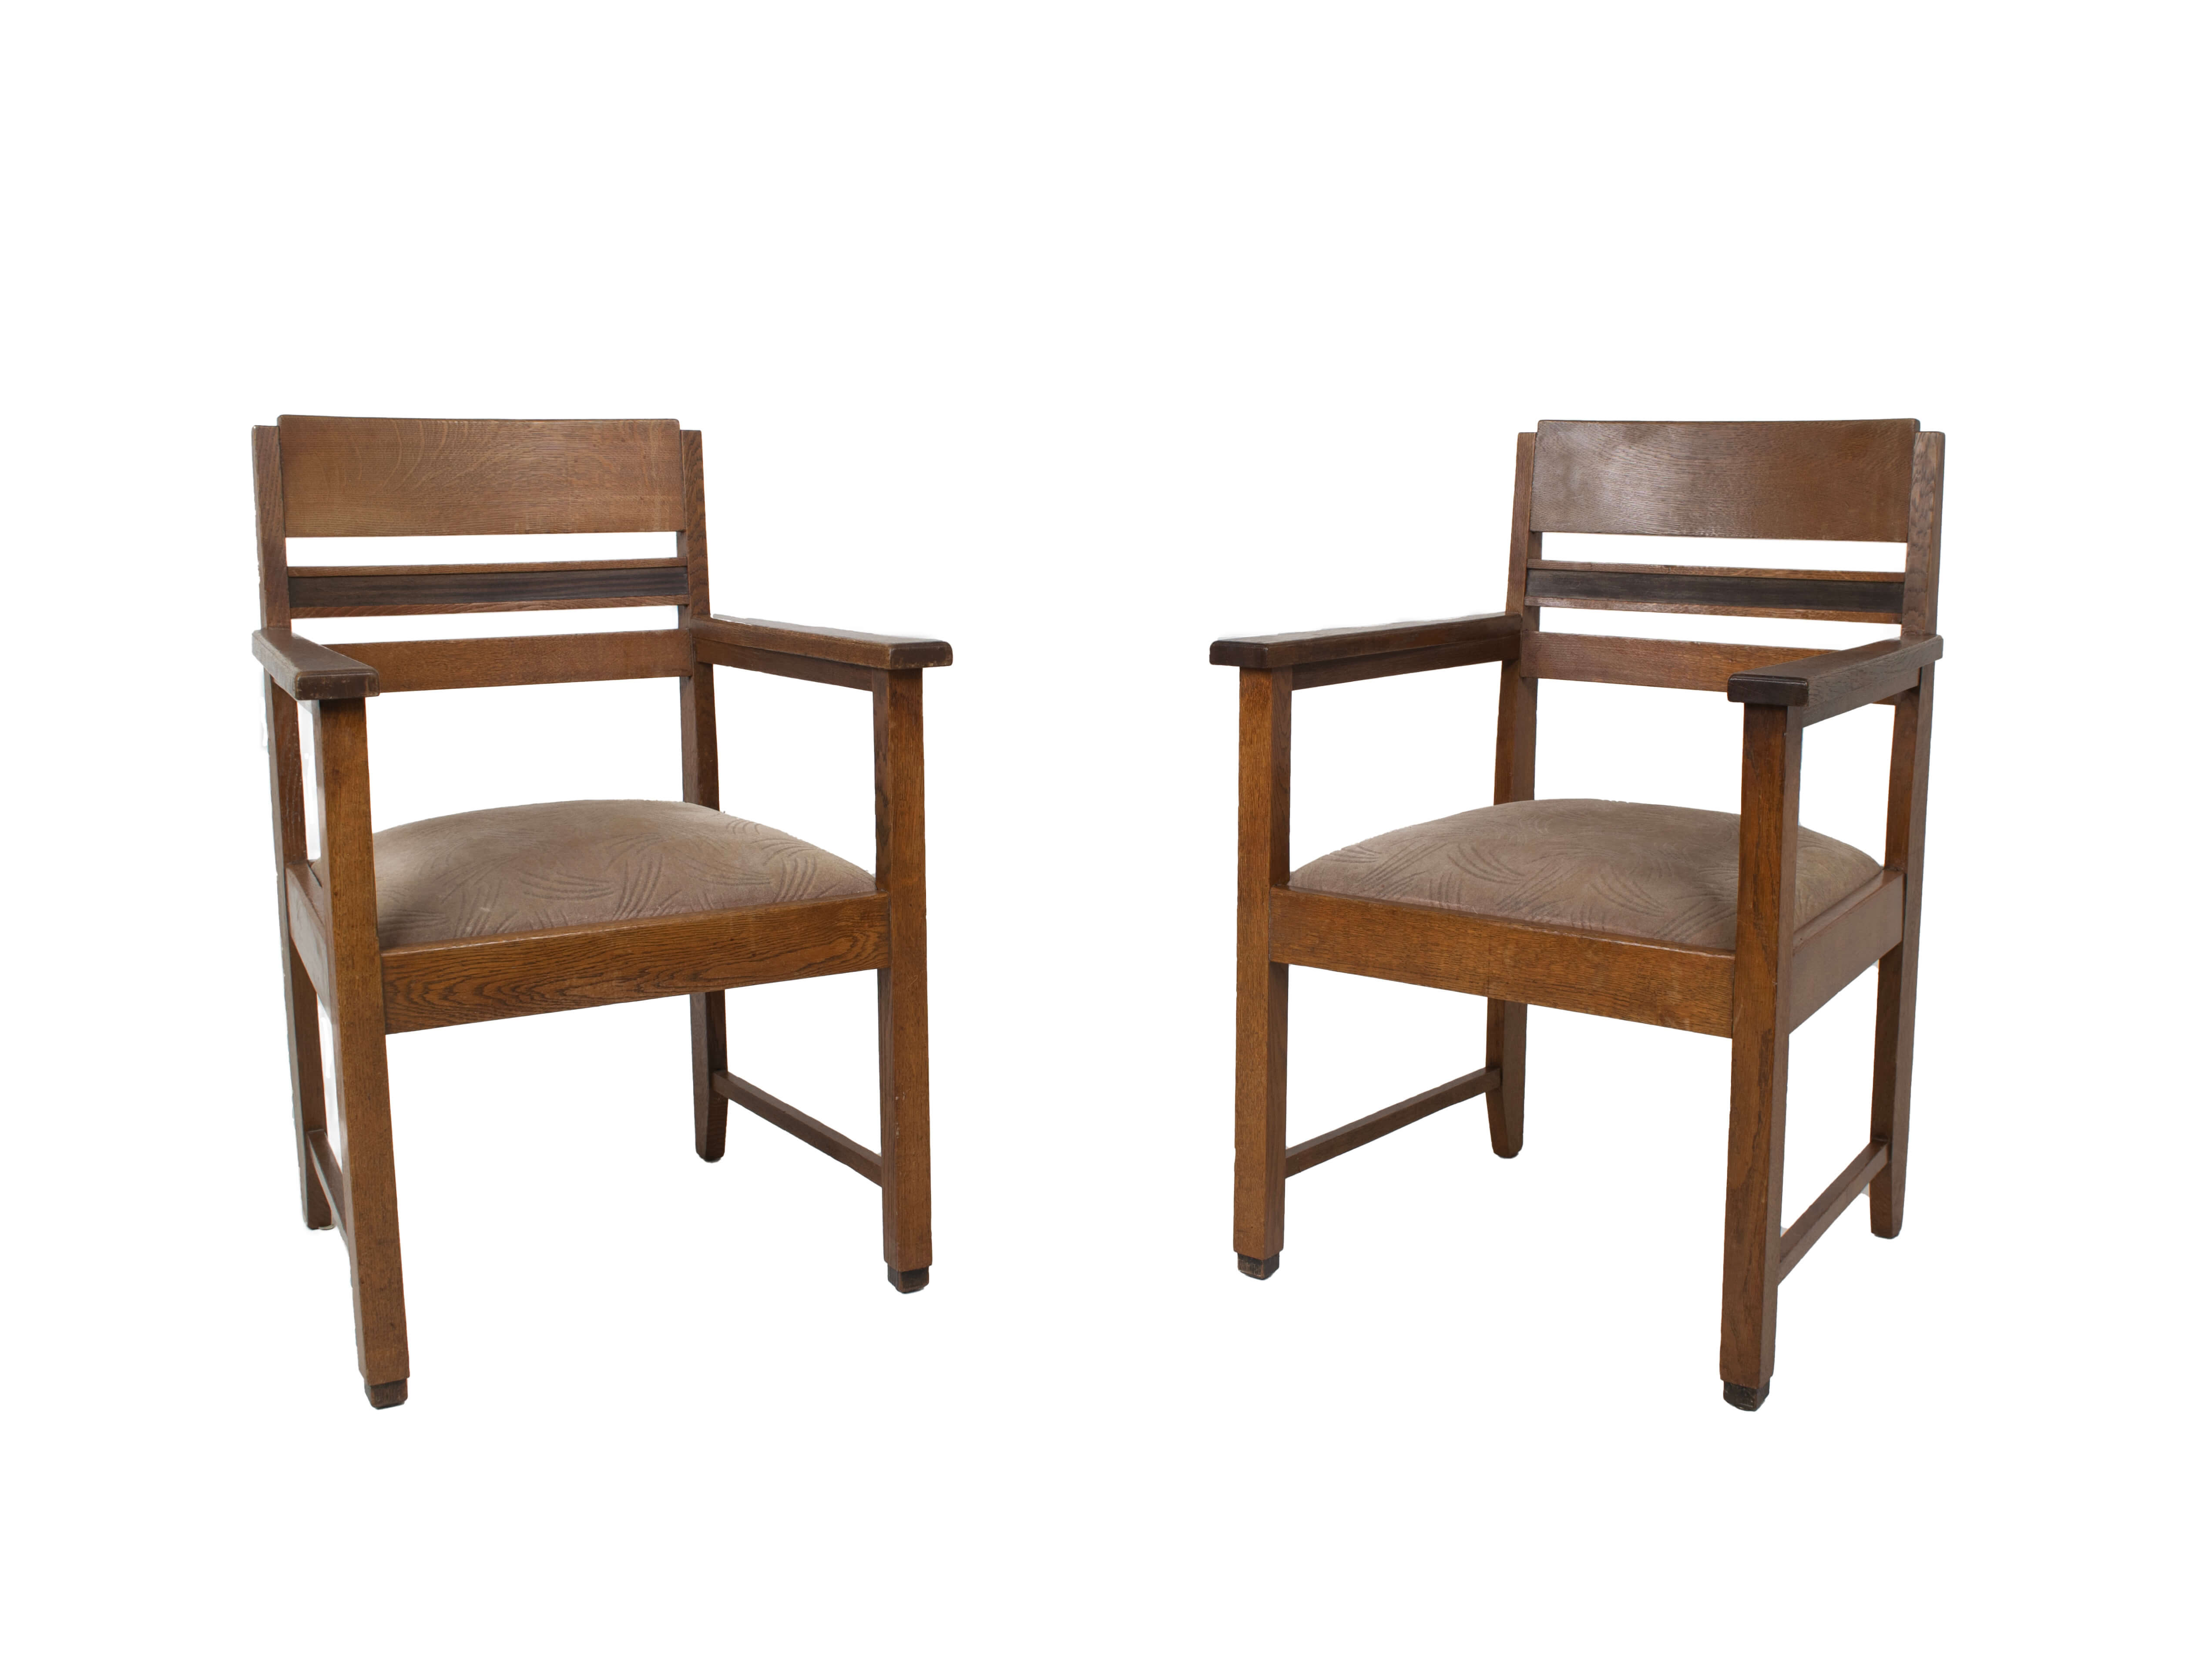 Set of Amsterdam School Arm Chairs, The Netherlands ~1930s